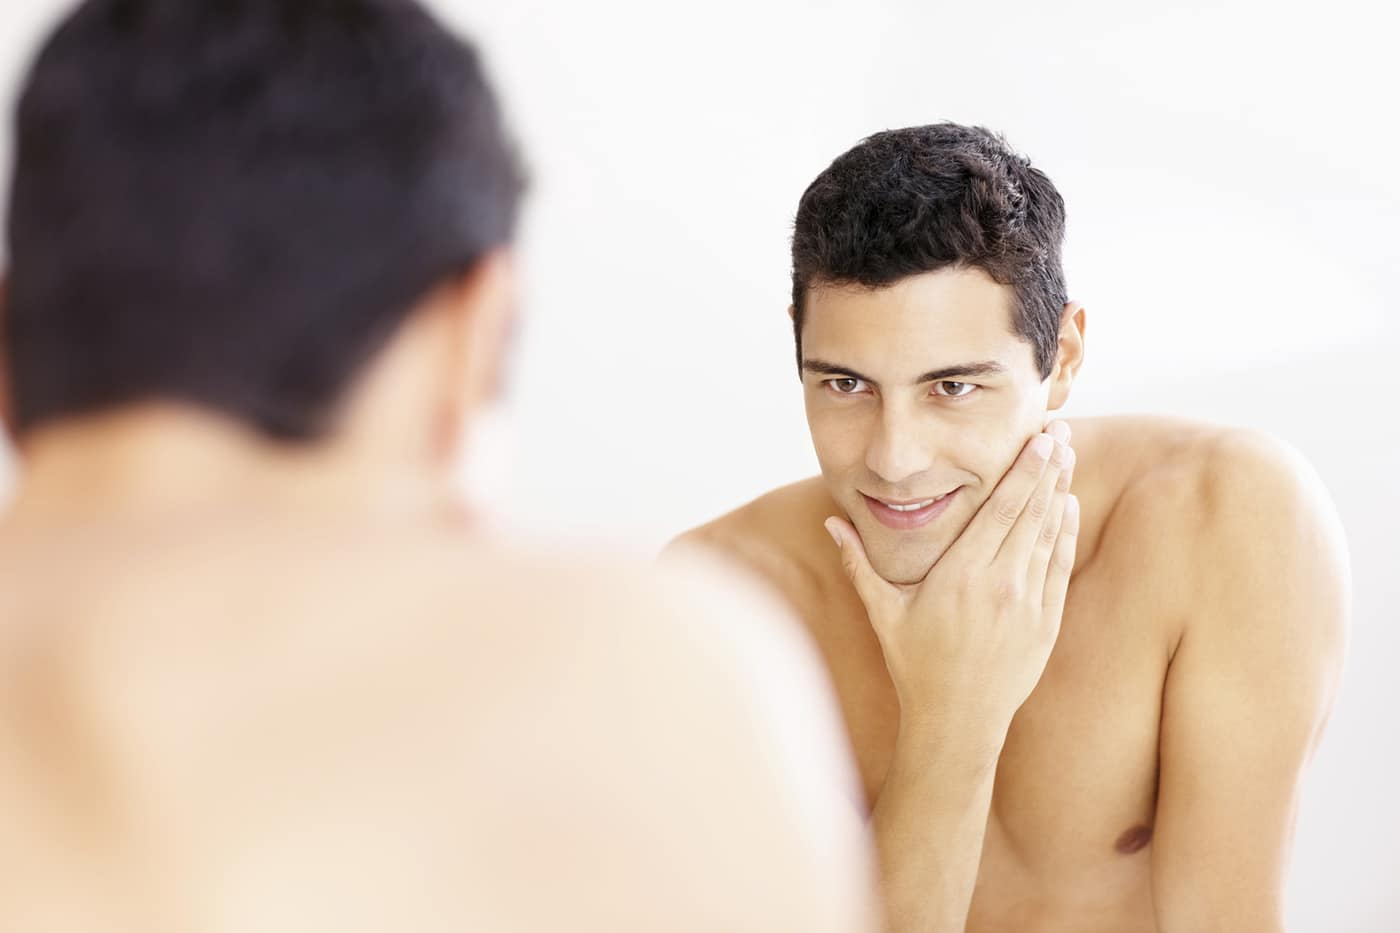 Reflection of a young man in the bathroom mirror after shaving